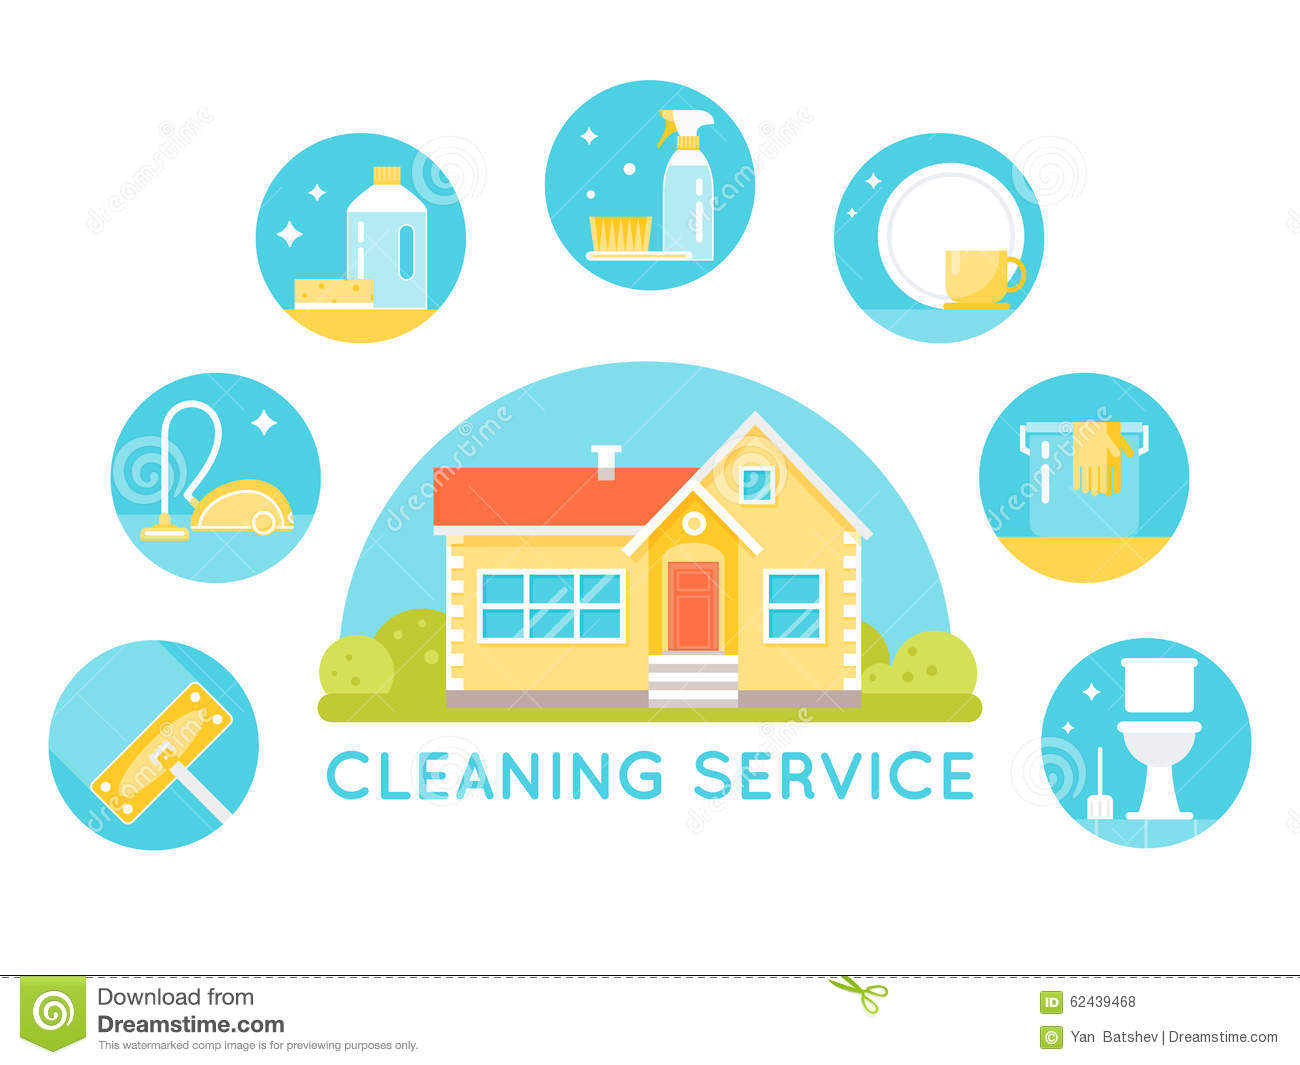 TSHINAMAKONDE CLEANING SERVICES | Junk Mail